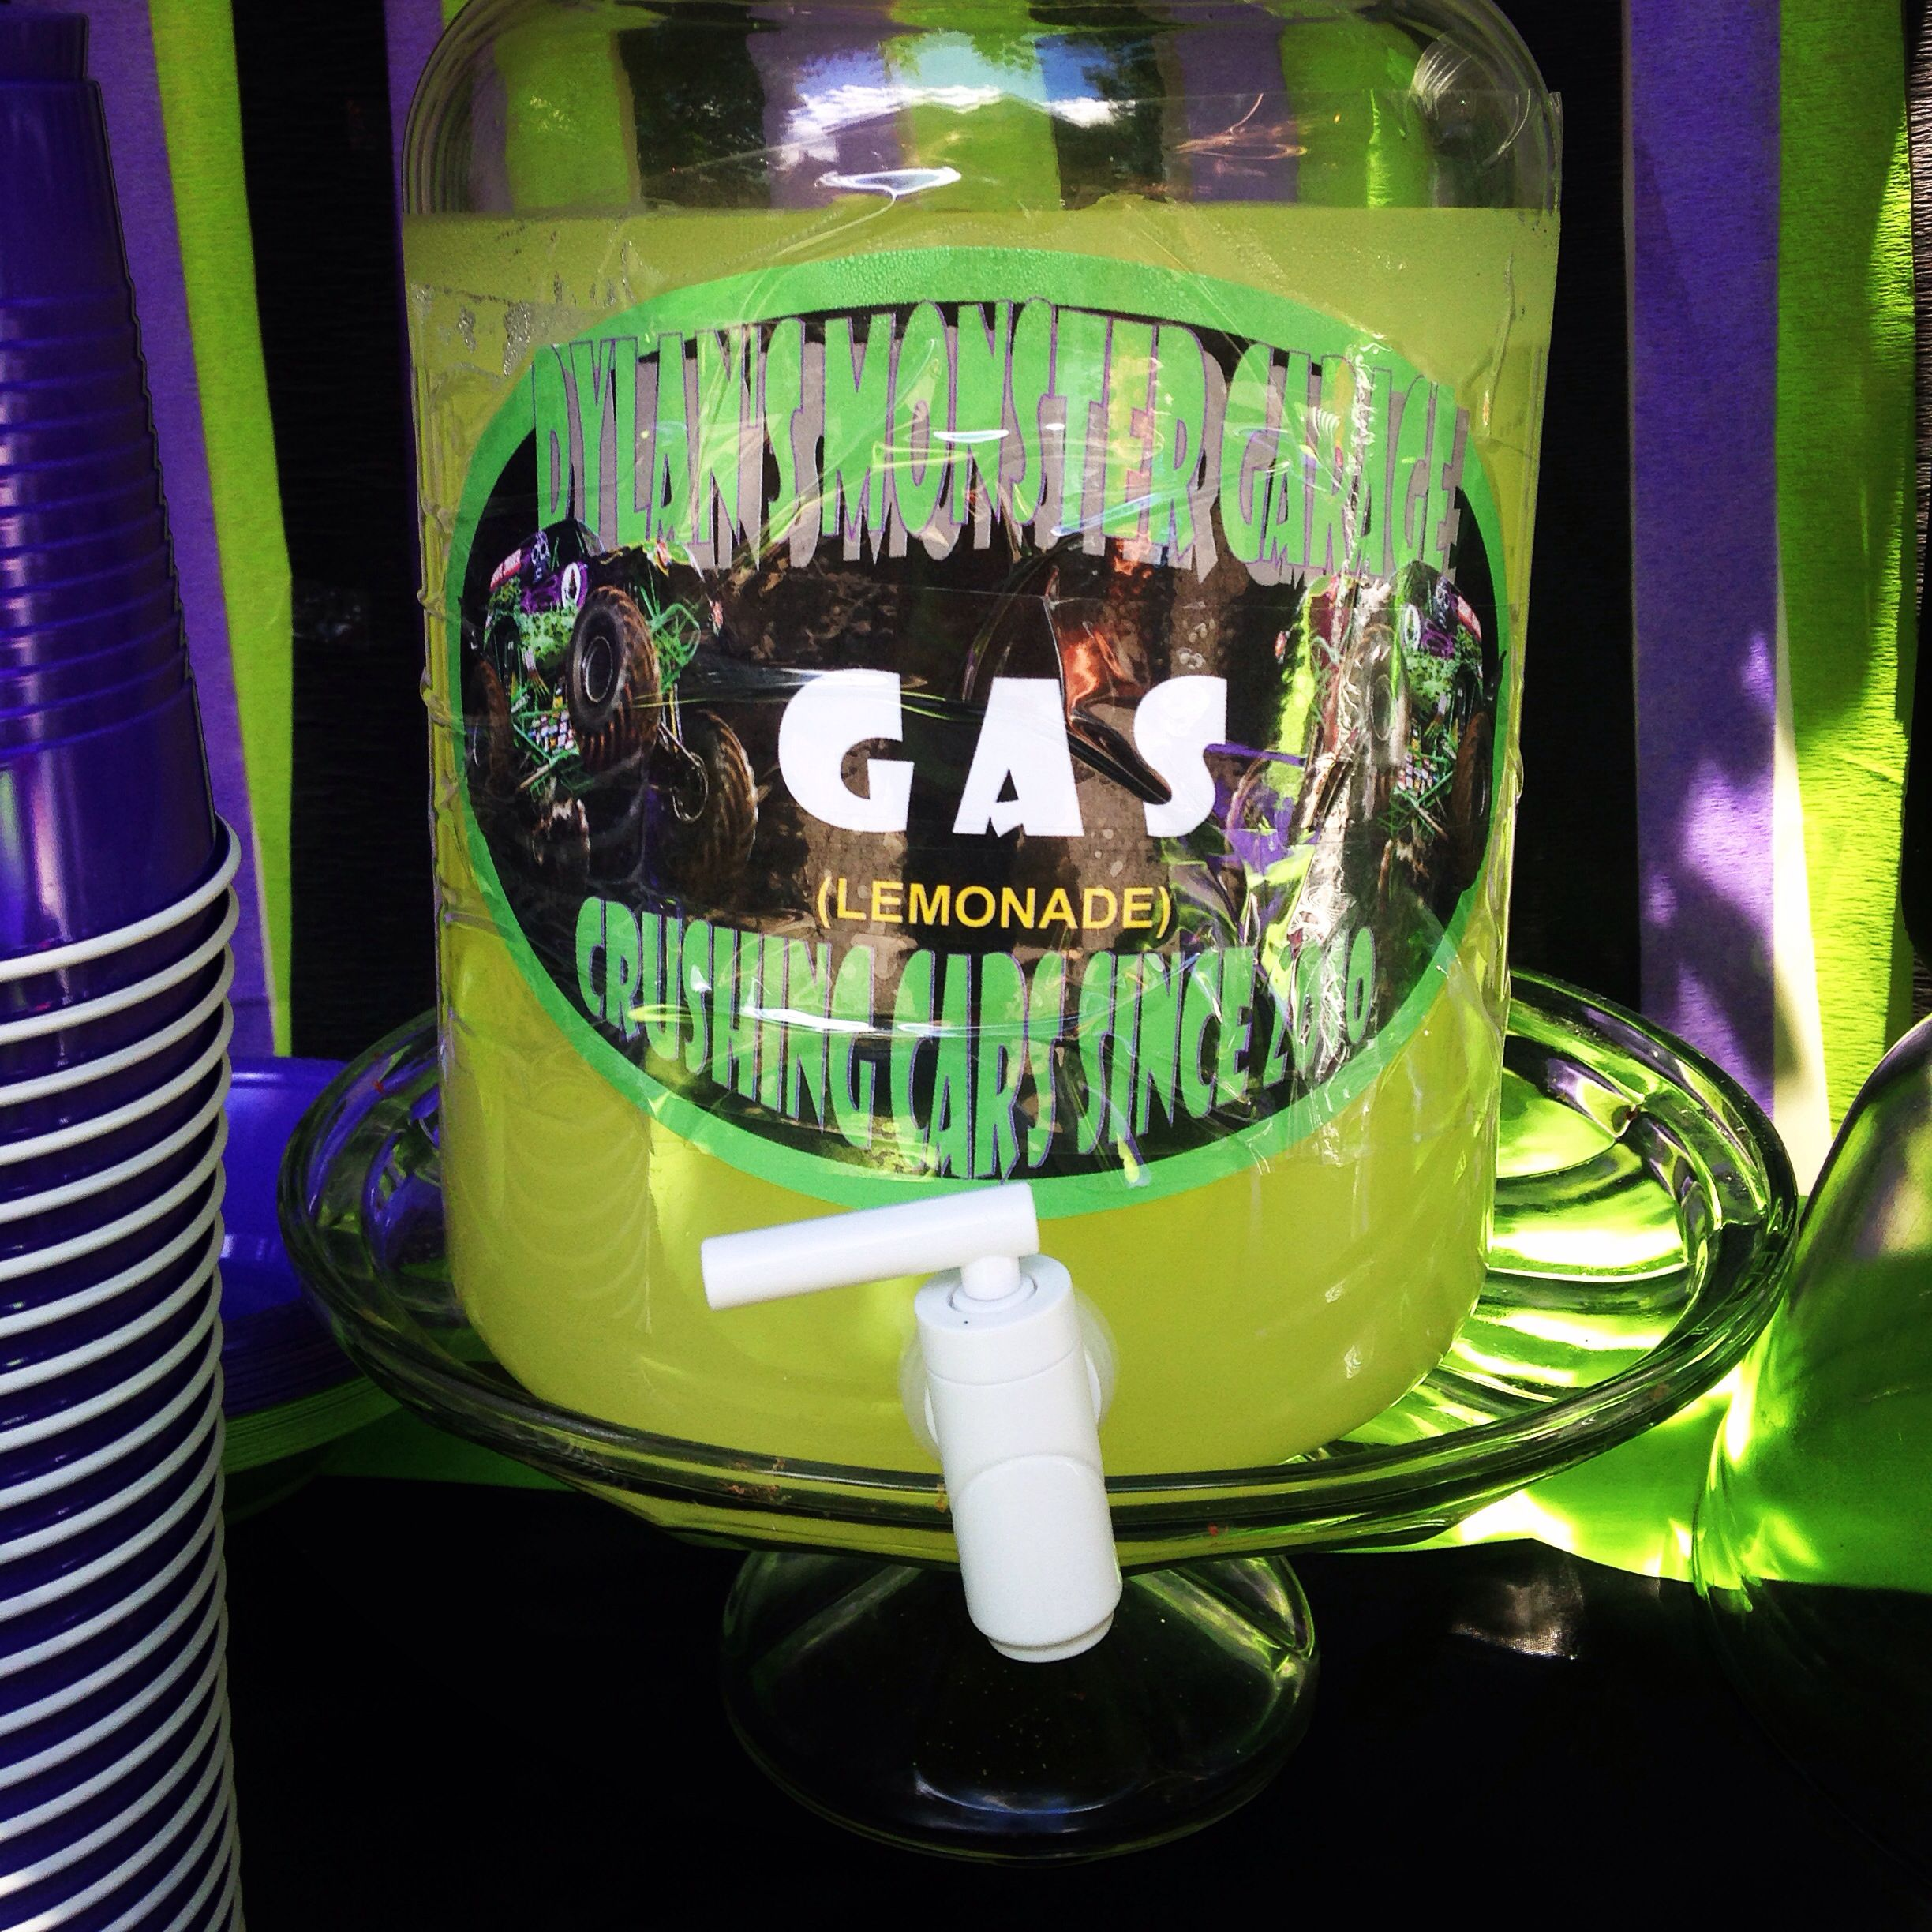 Gas (lemonade) monster truck party grave digger party